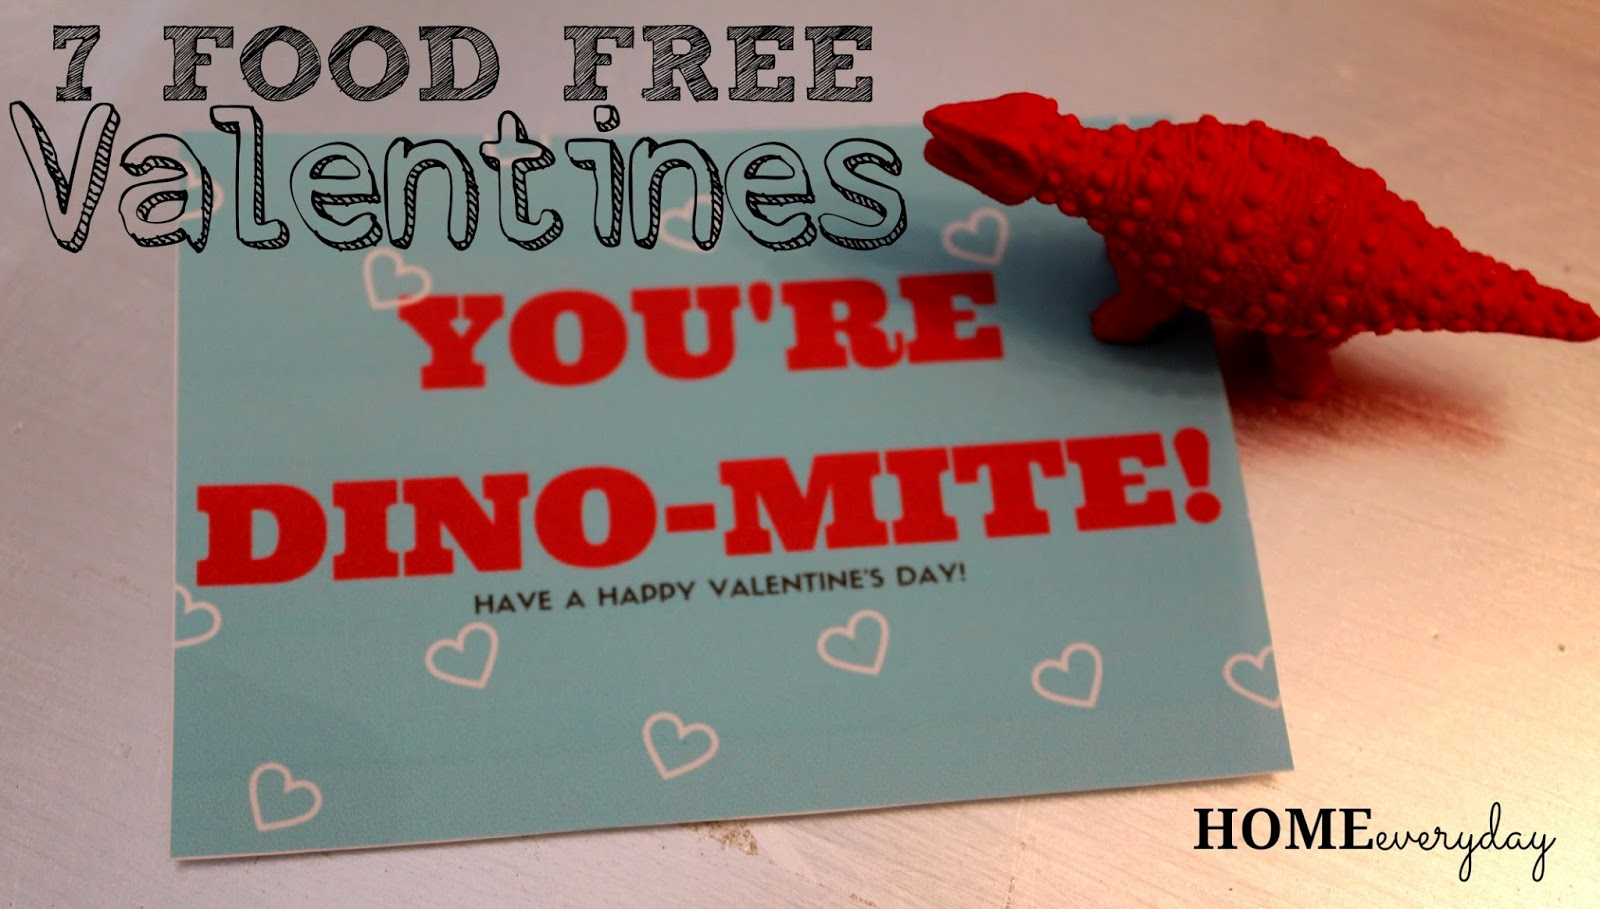 Home Everyday 7 Awesome Food Free Valentines Free Printables